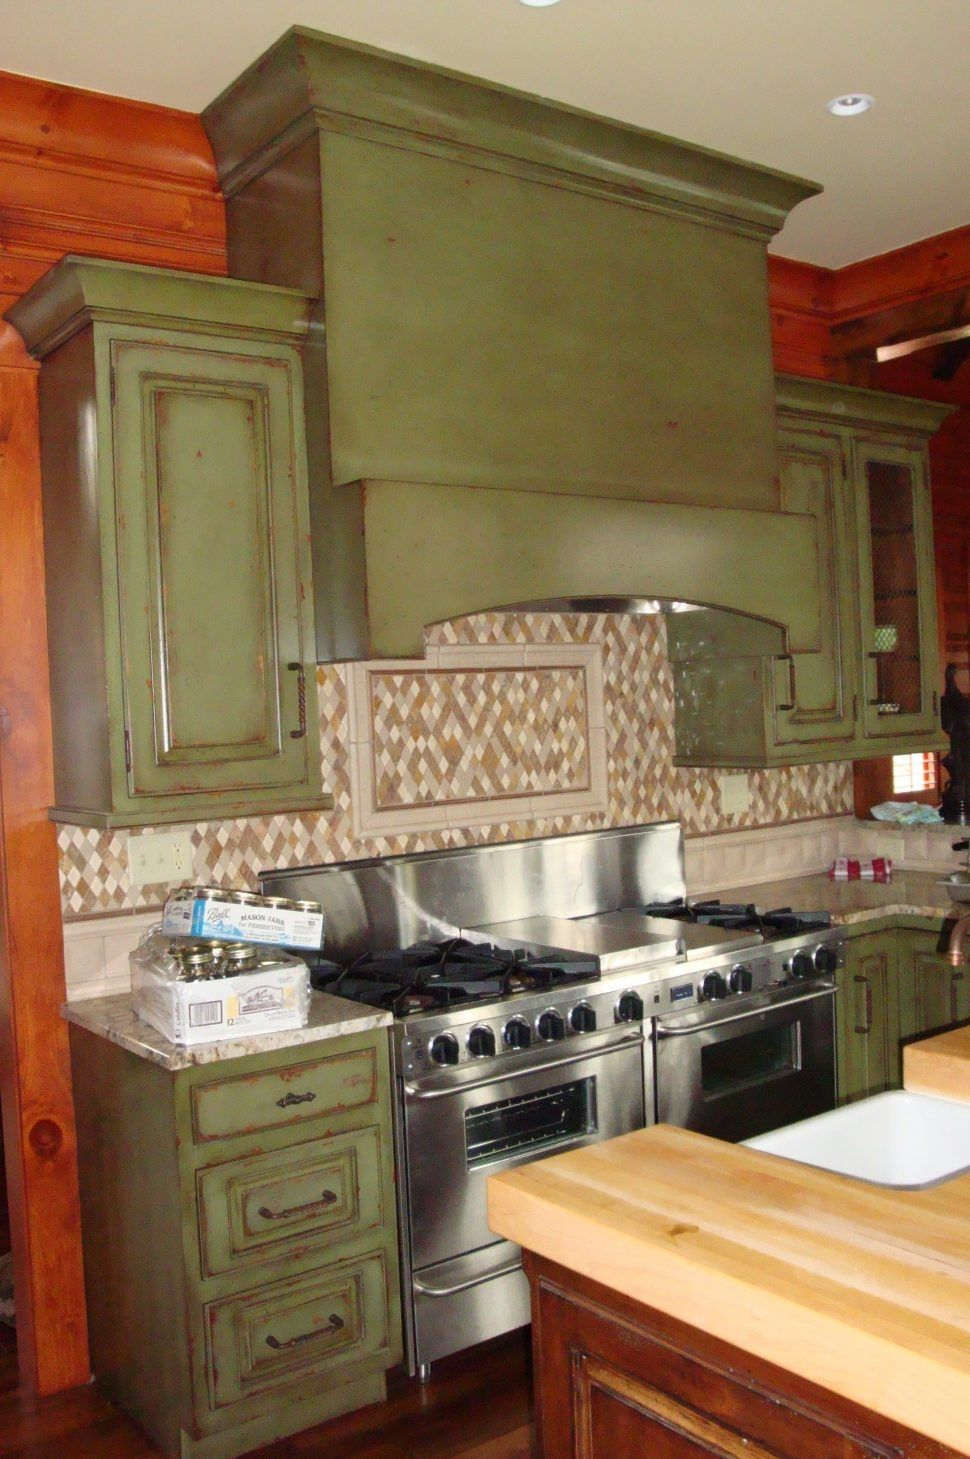 Olive Green Distressed Kitchen Cabinets Distressed Kitchen Cabinets Distressed Kitchen Painting Kitchen Cabinets